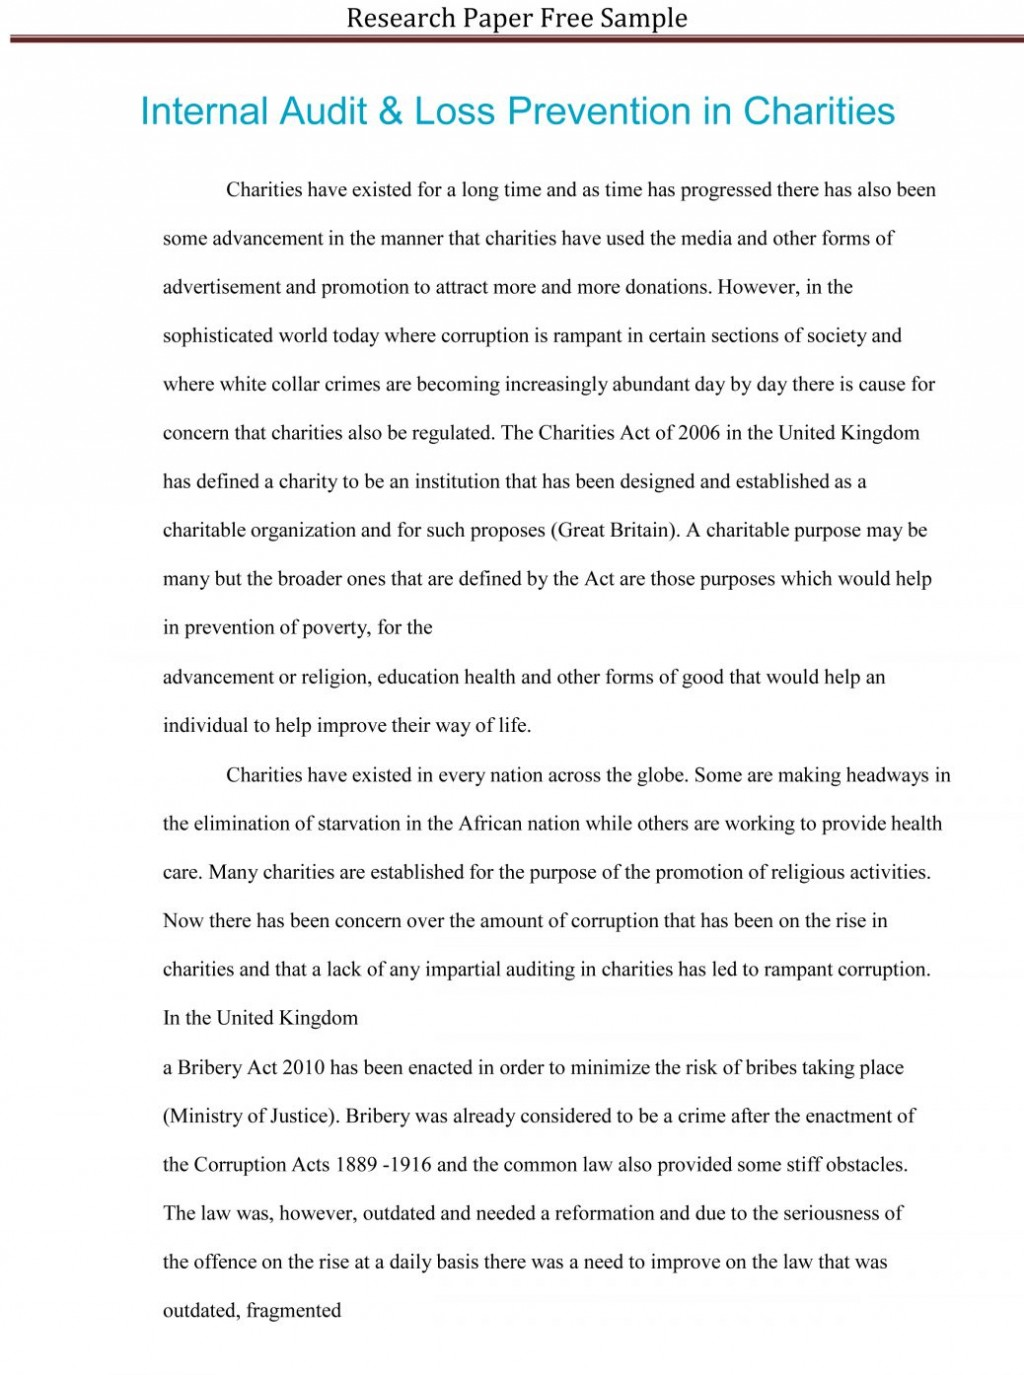 020 Argumentative Research Paper Thesis Examples Sample Essay Template For Essays Example Of Tremendous Image Best Large